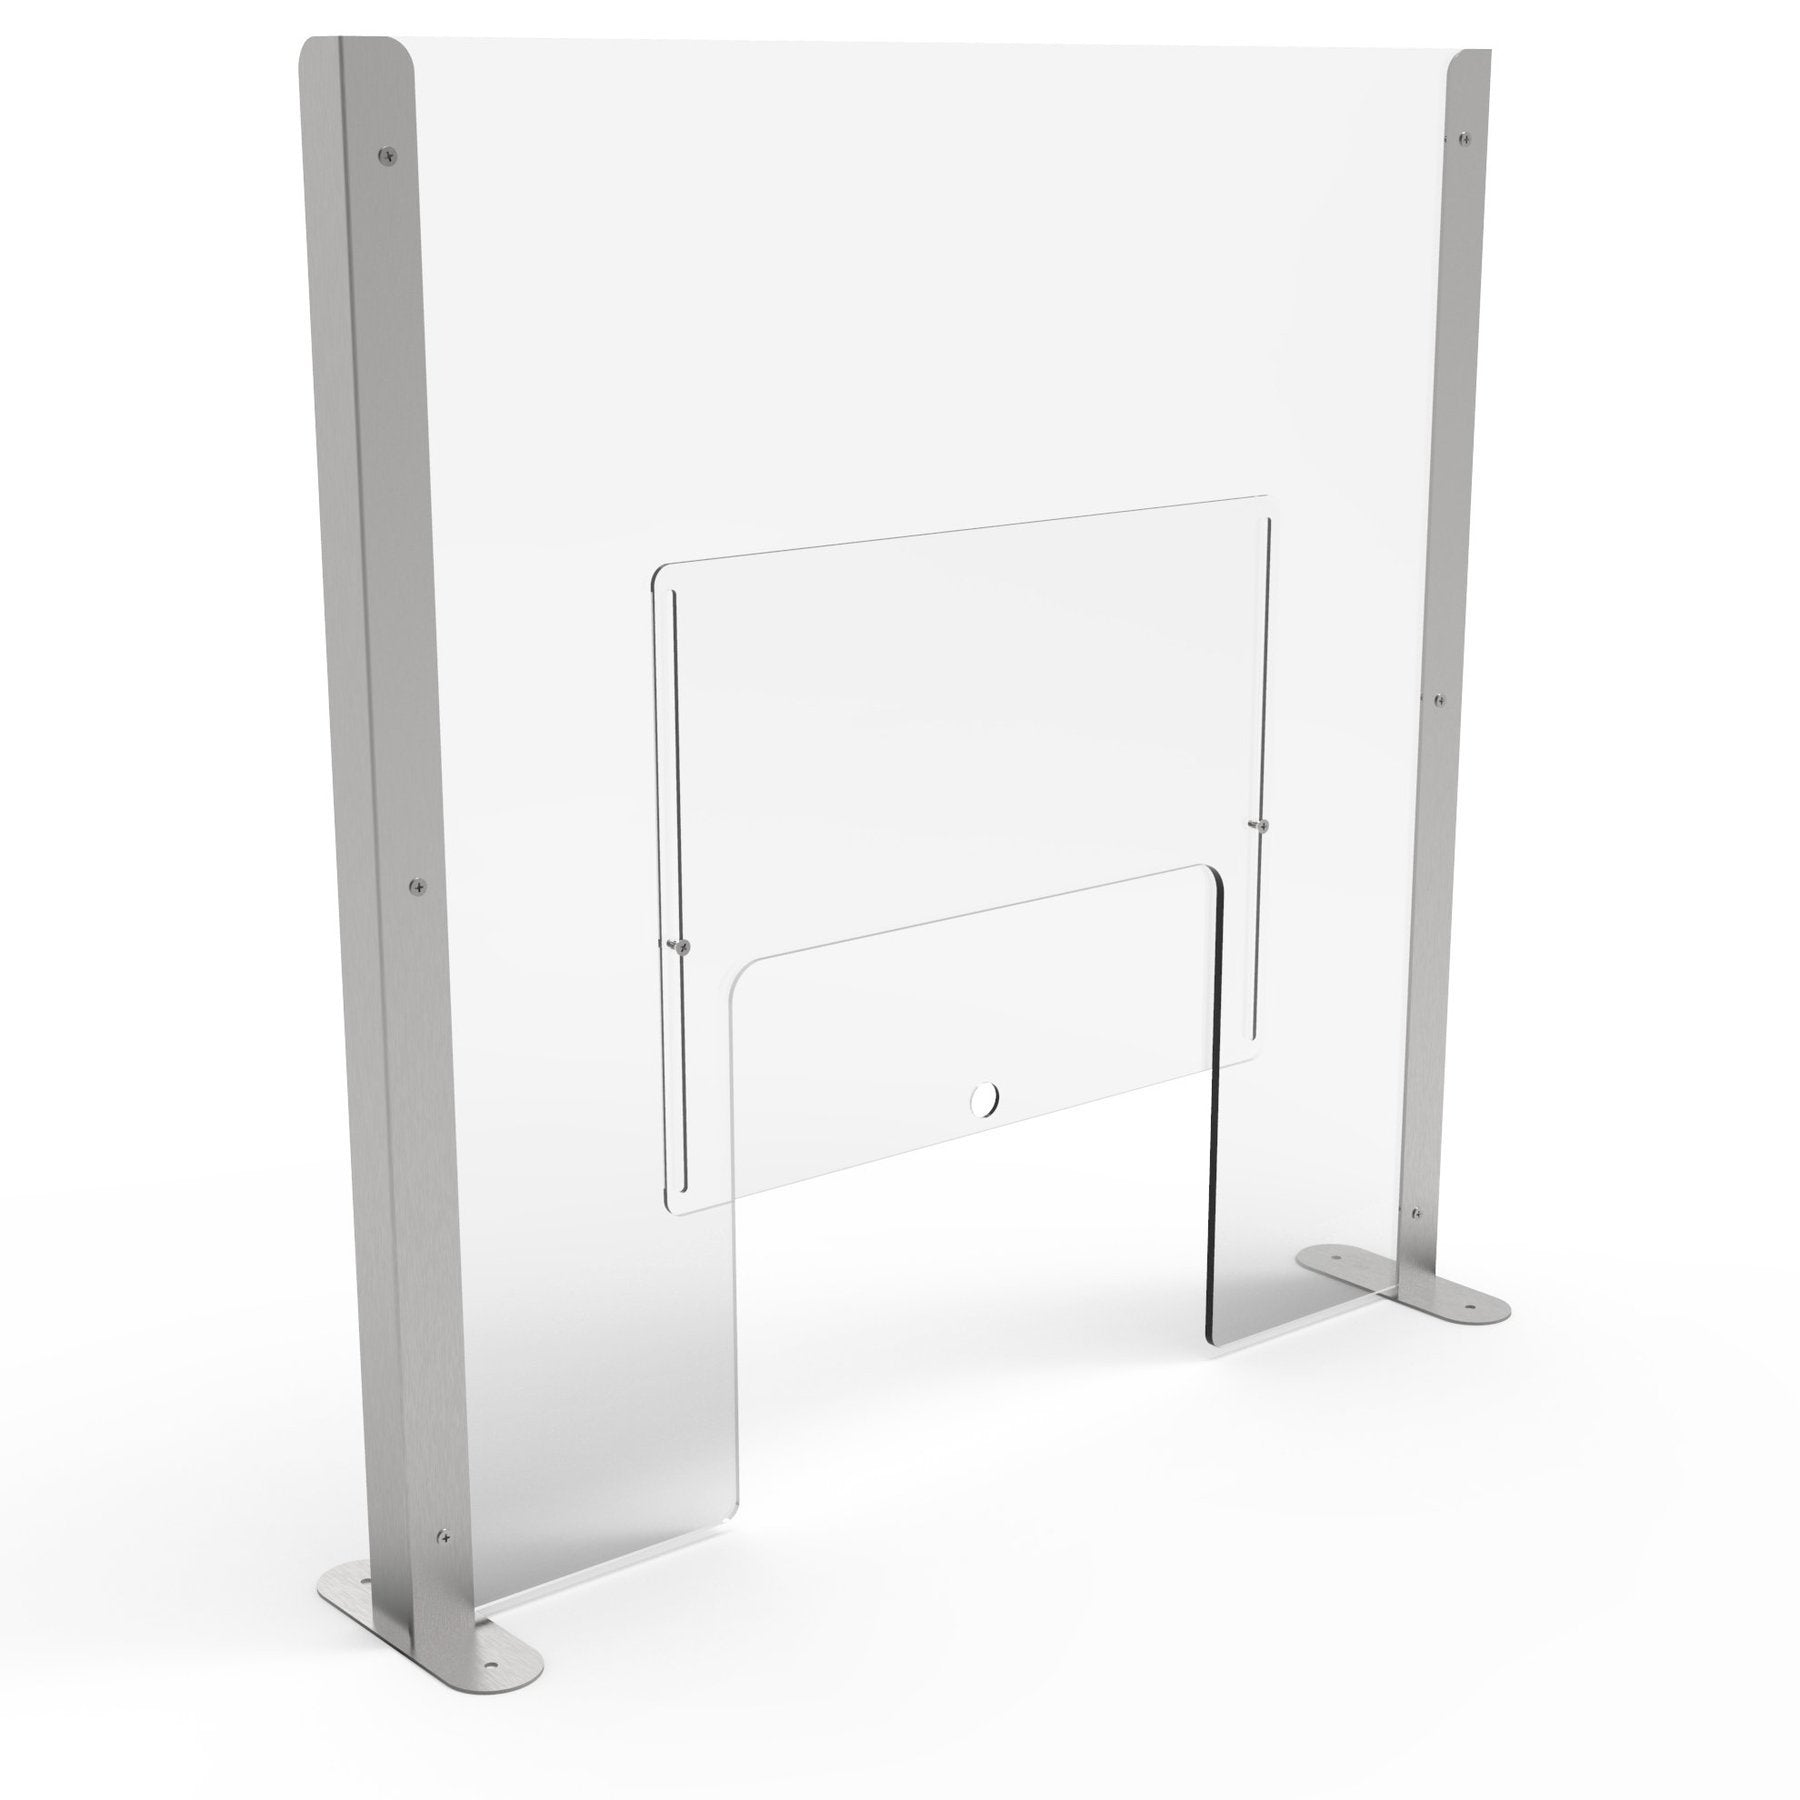 Pro Sneeze Guard with Acrylic Screen & Stainless-Steel Legs - Displaypro